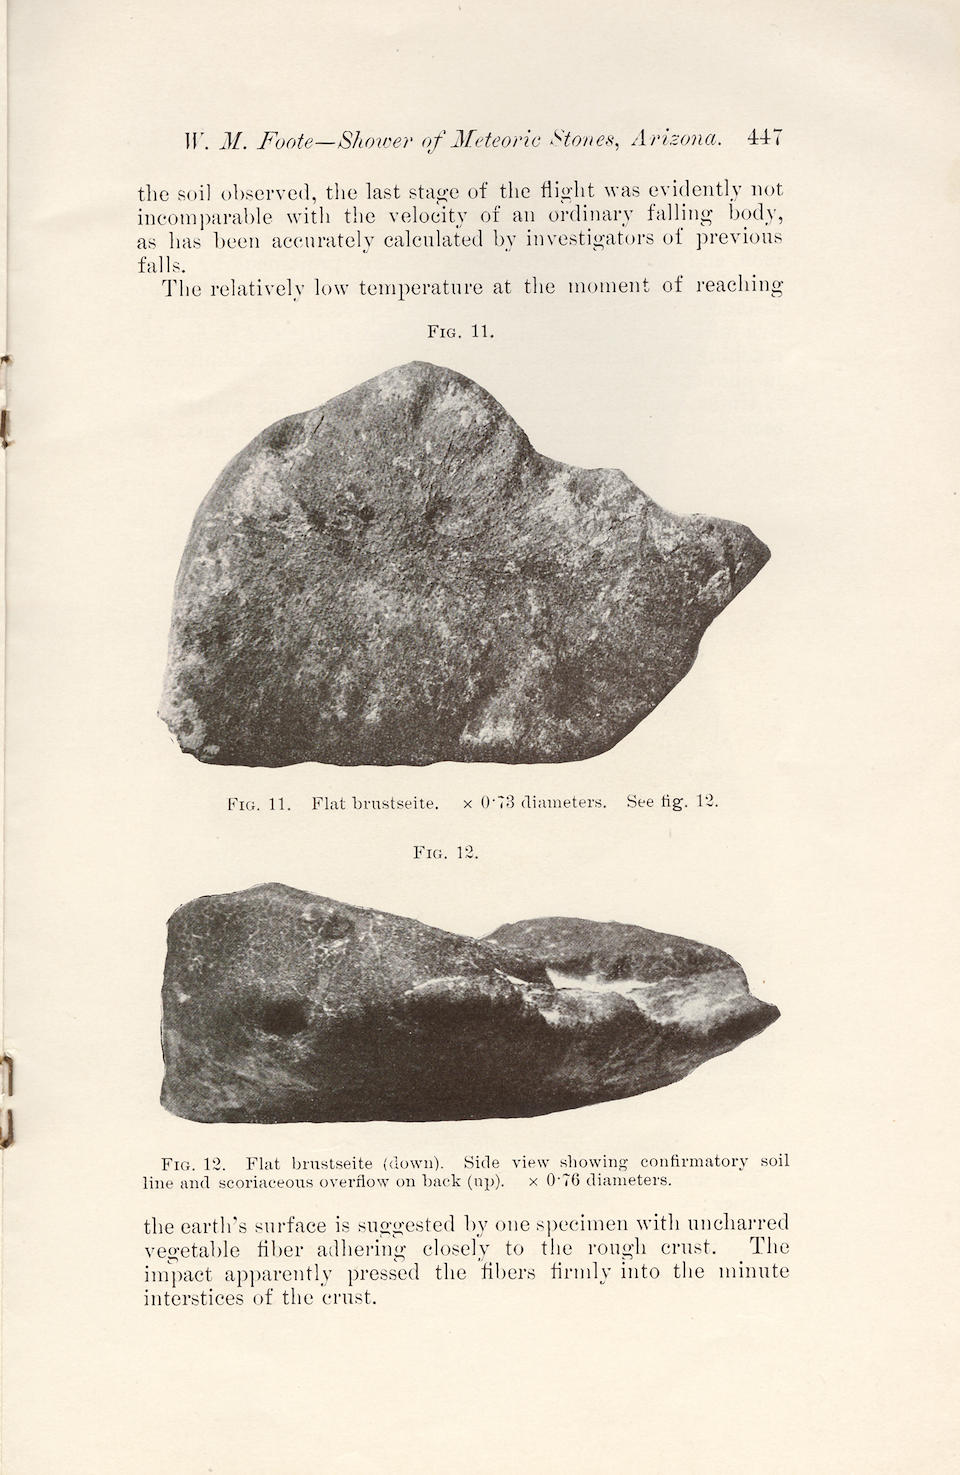 Holbrook — The Oriented Meteorite Depicted in Foote's 1912 Abstract and the Original Abstract